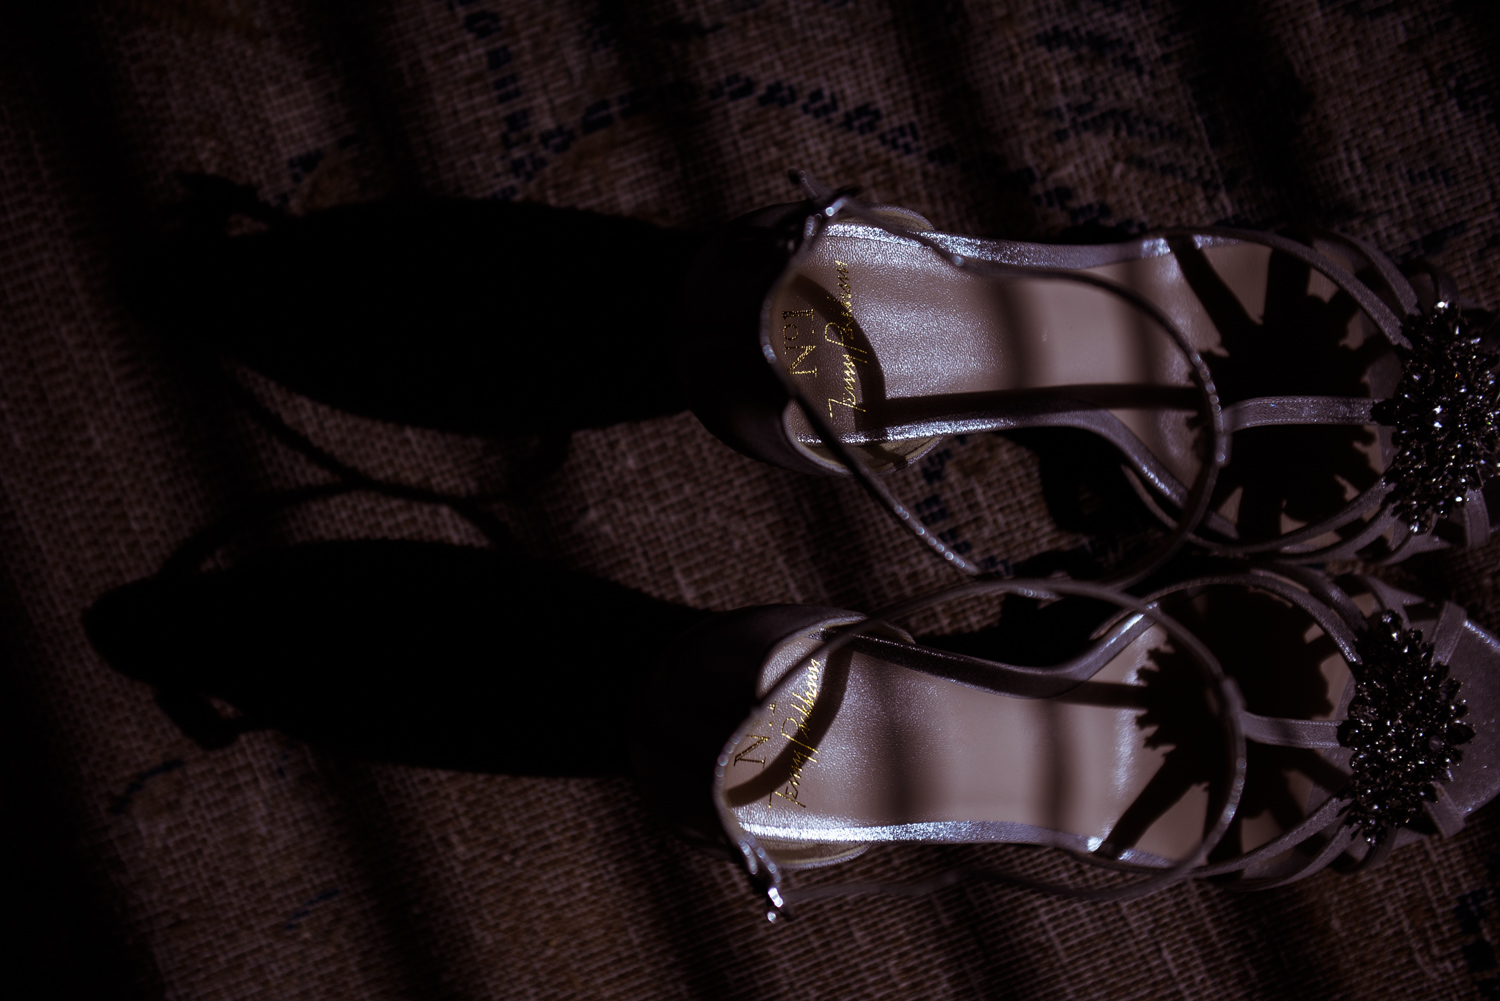 Shoes in streaming sunlight